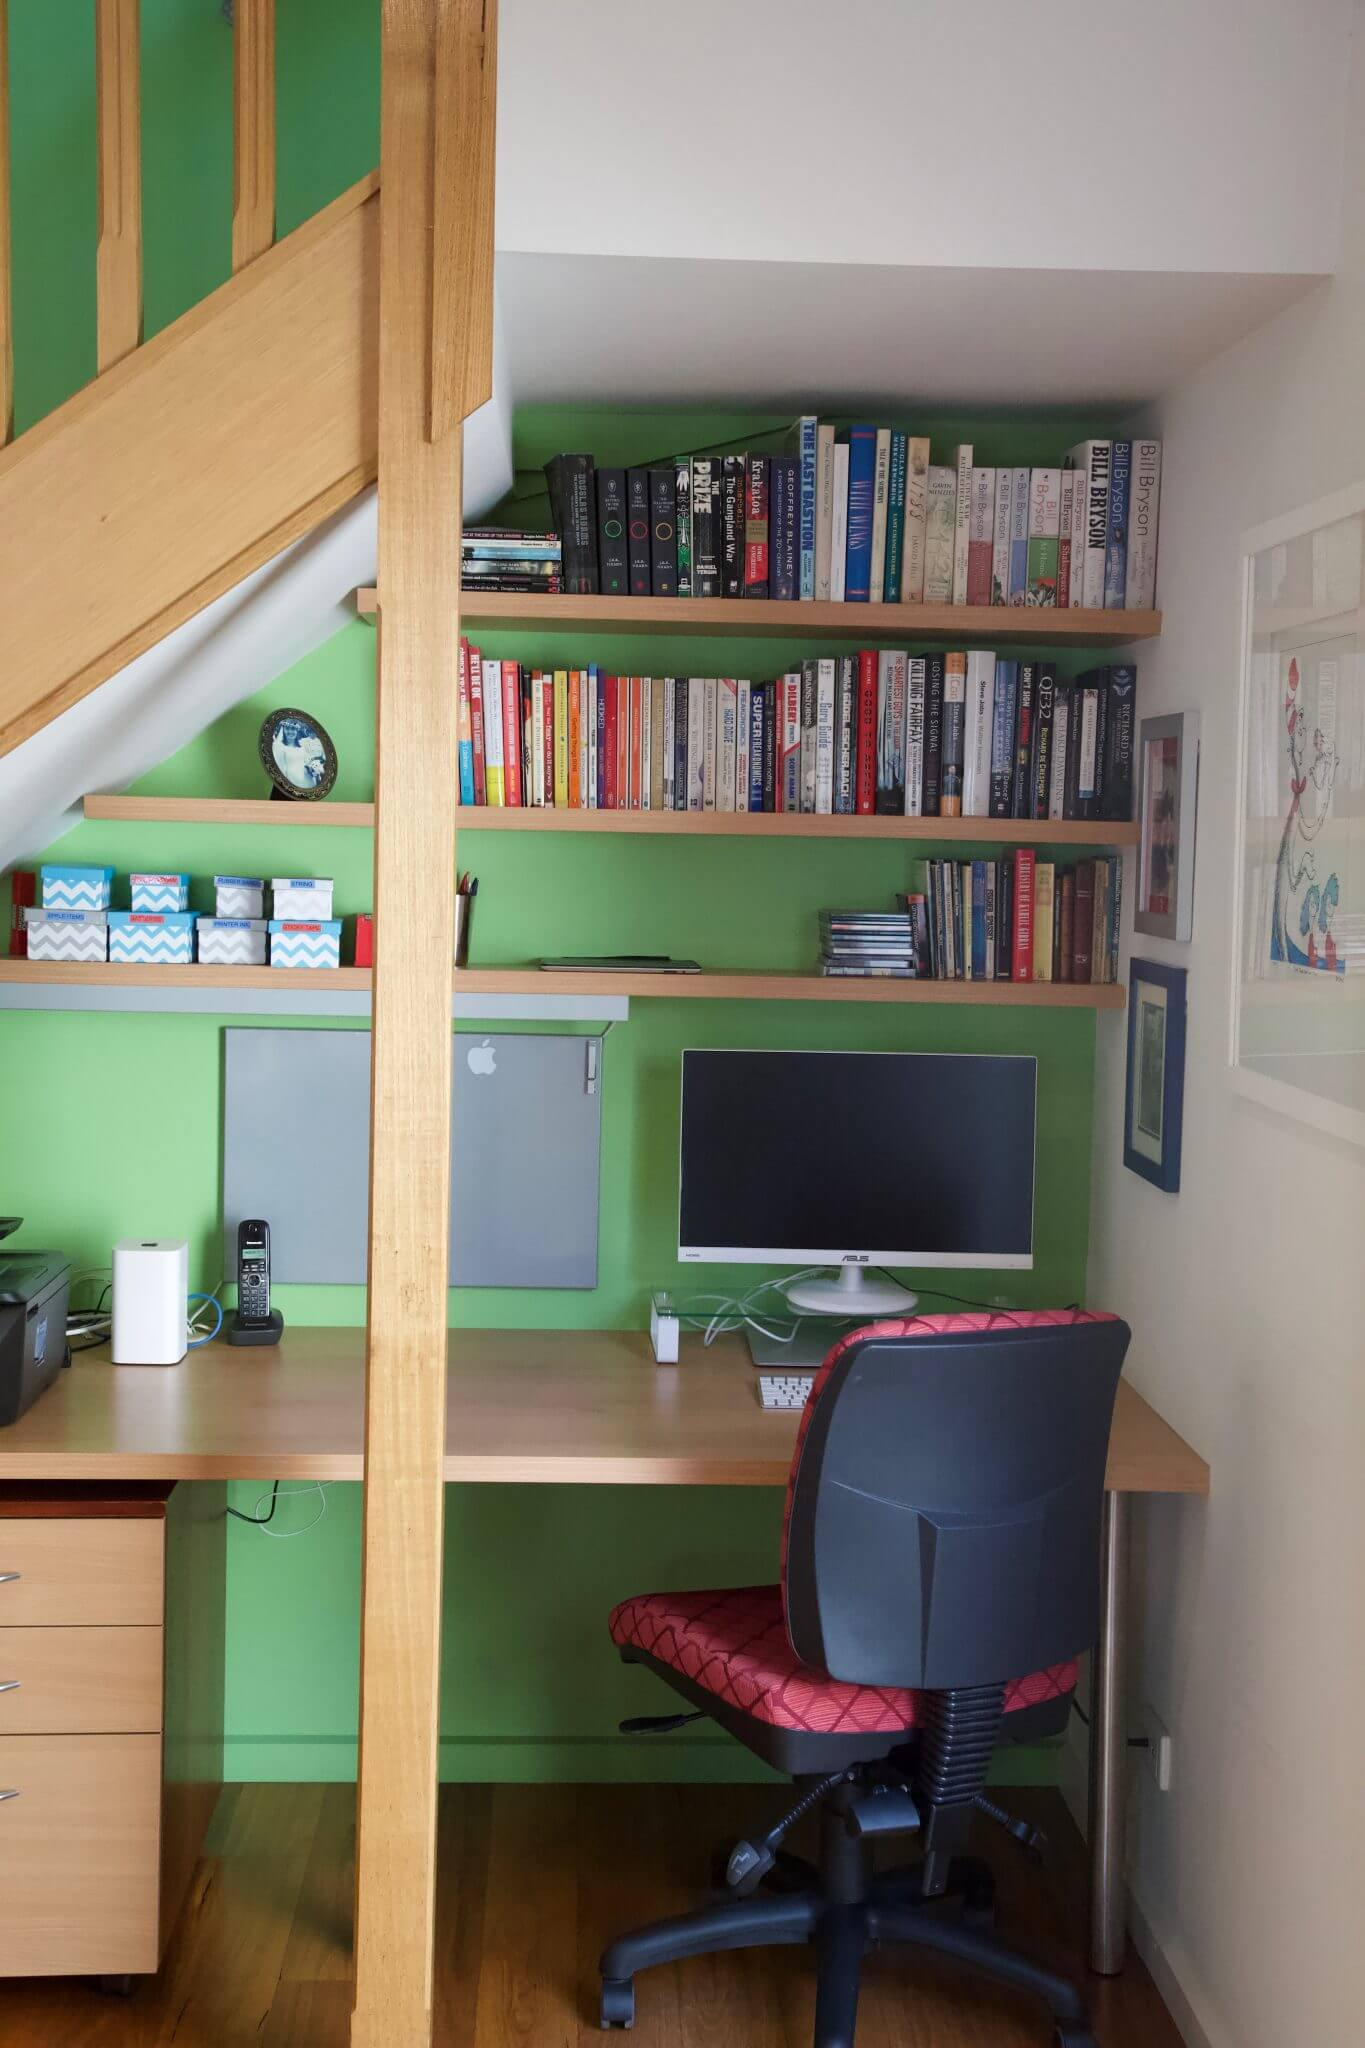 Study nook under stairs with computer desk and three shelves of books